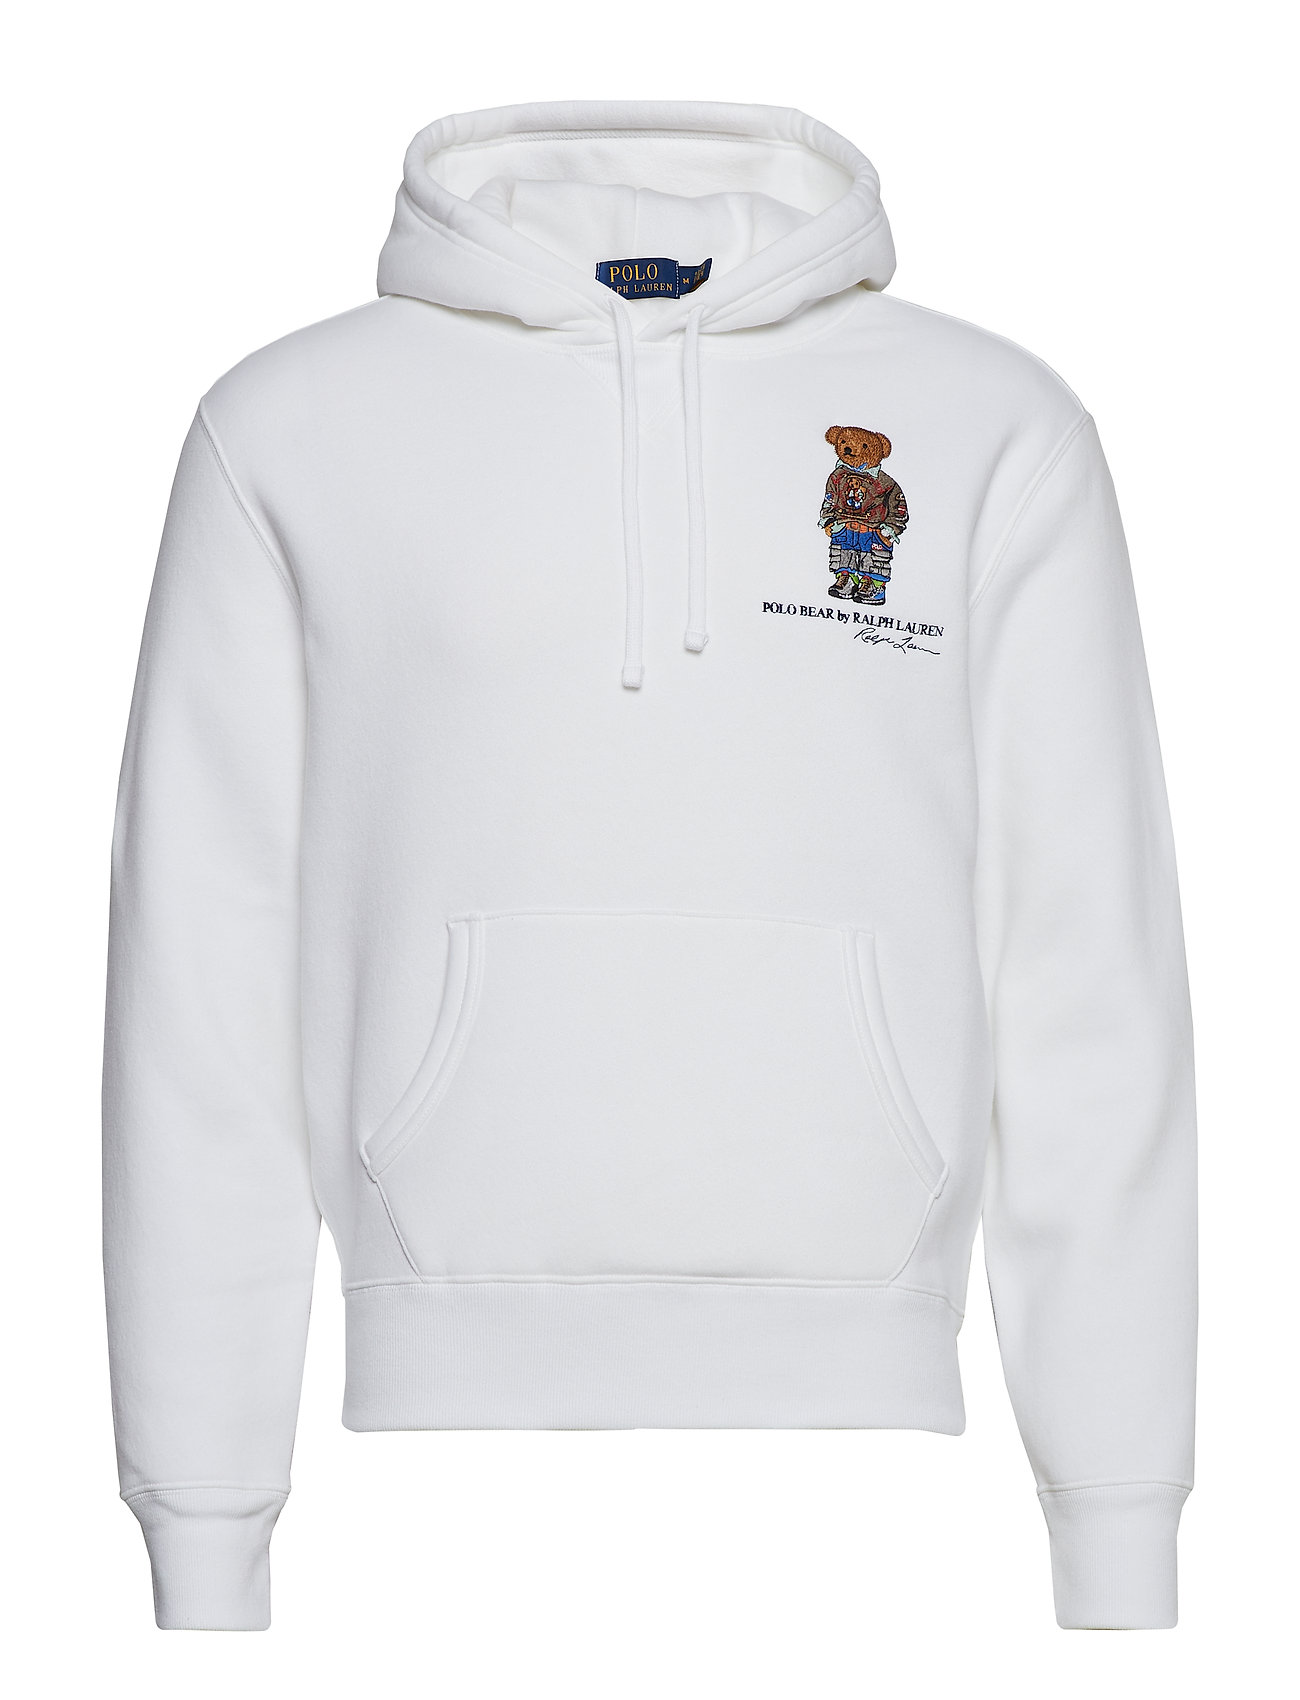 Polo Ralph Lauren LSPOHOOD M3-LONG SLEEVE-KNIT - WHITE